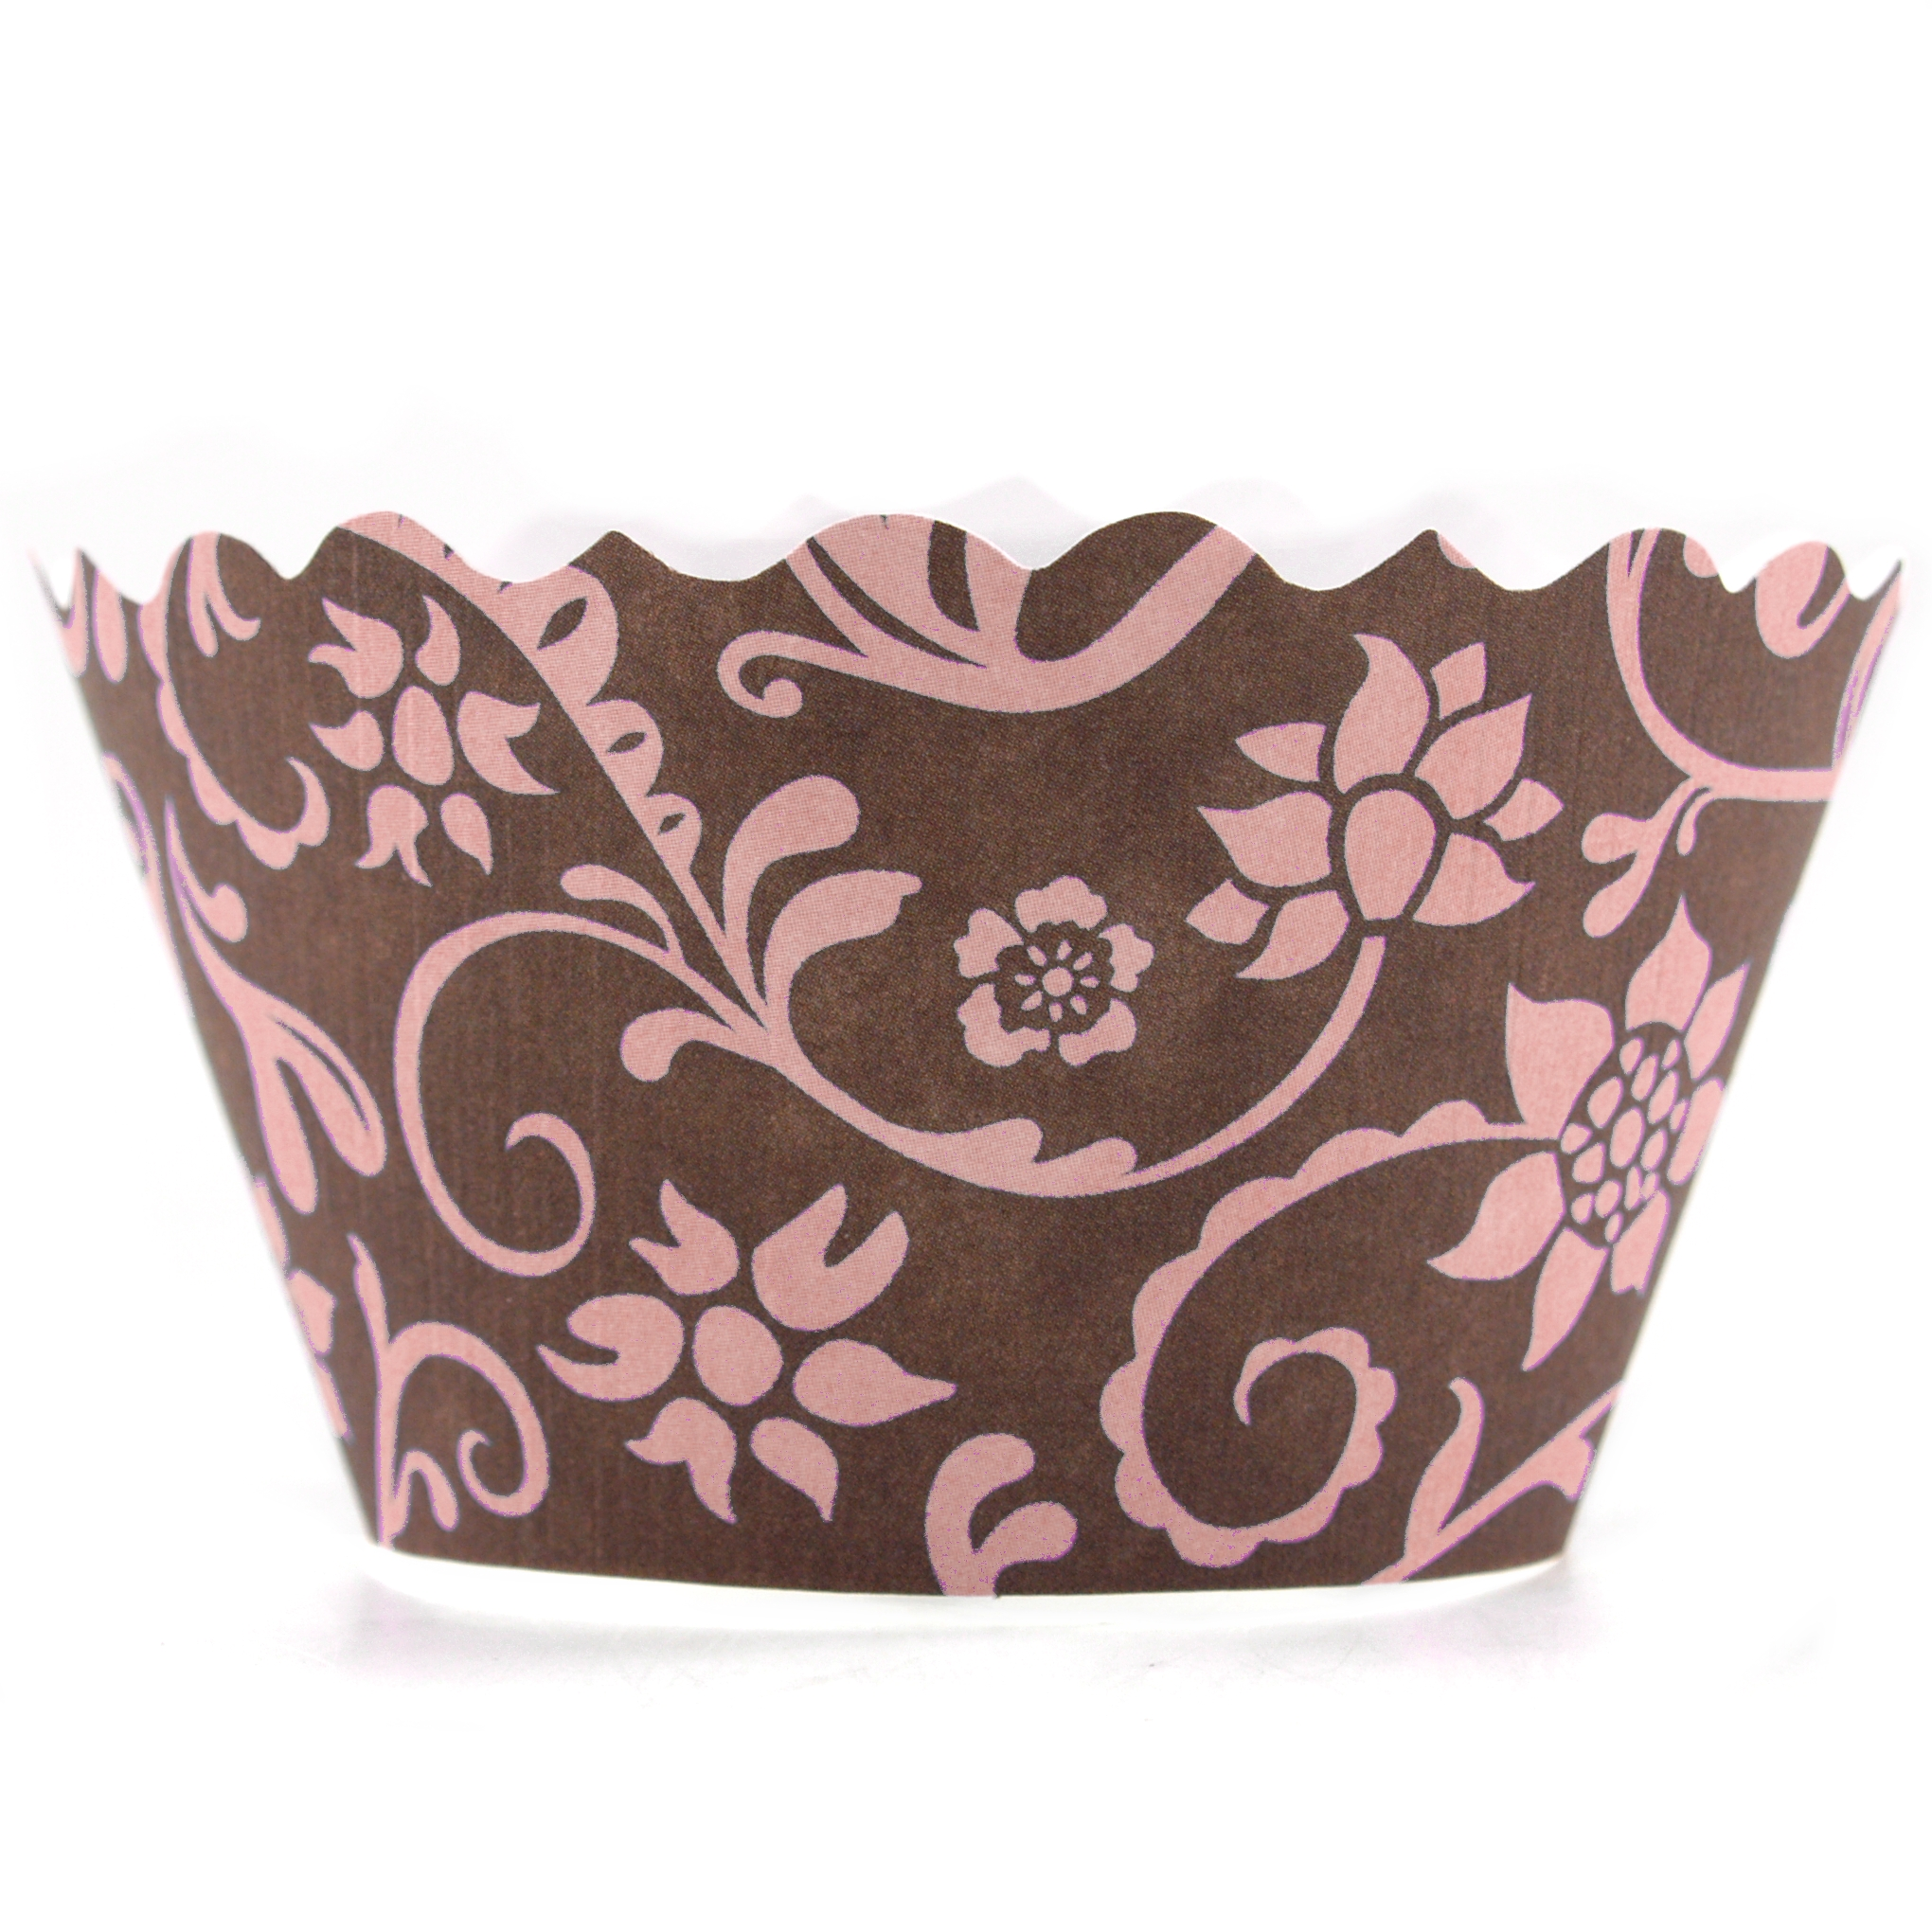 Bella Cupcake Couture Hannah Pink and Brown Cupcake Wrapper, Set of 12